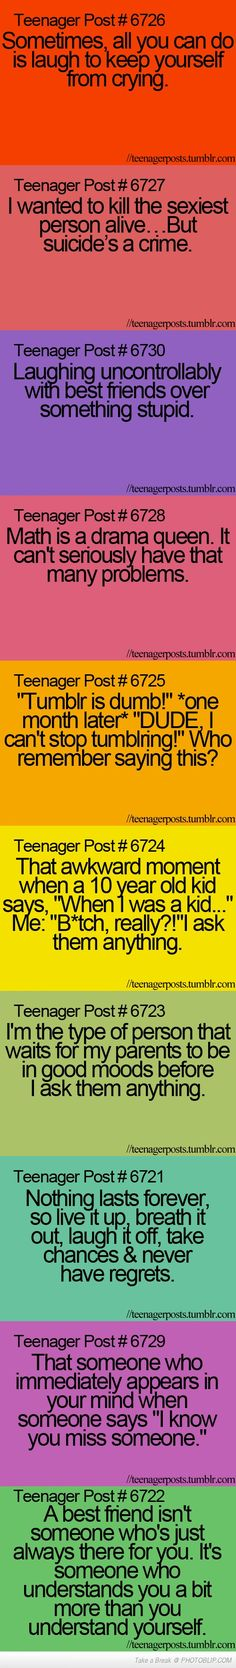 Teenager Posts Compilation